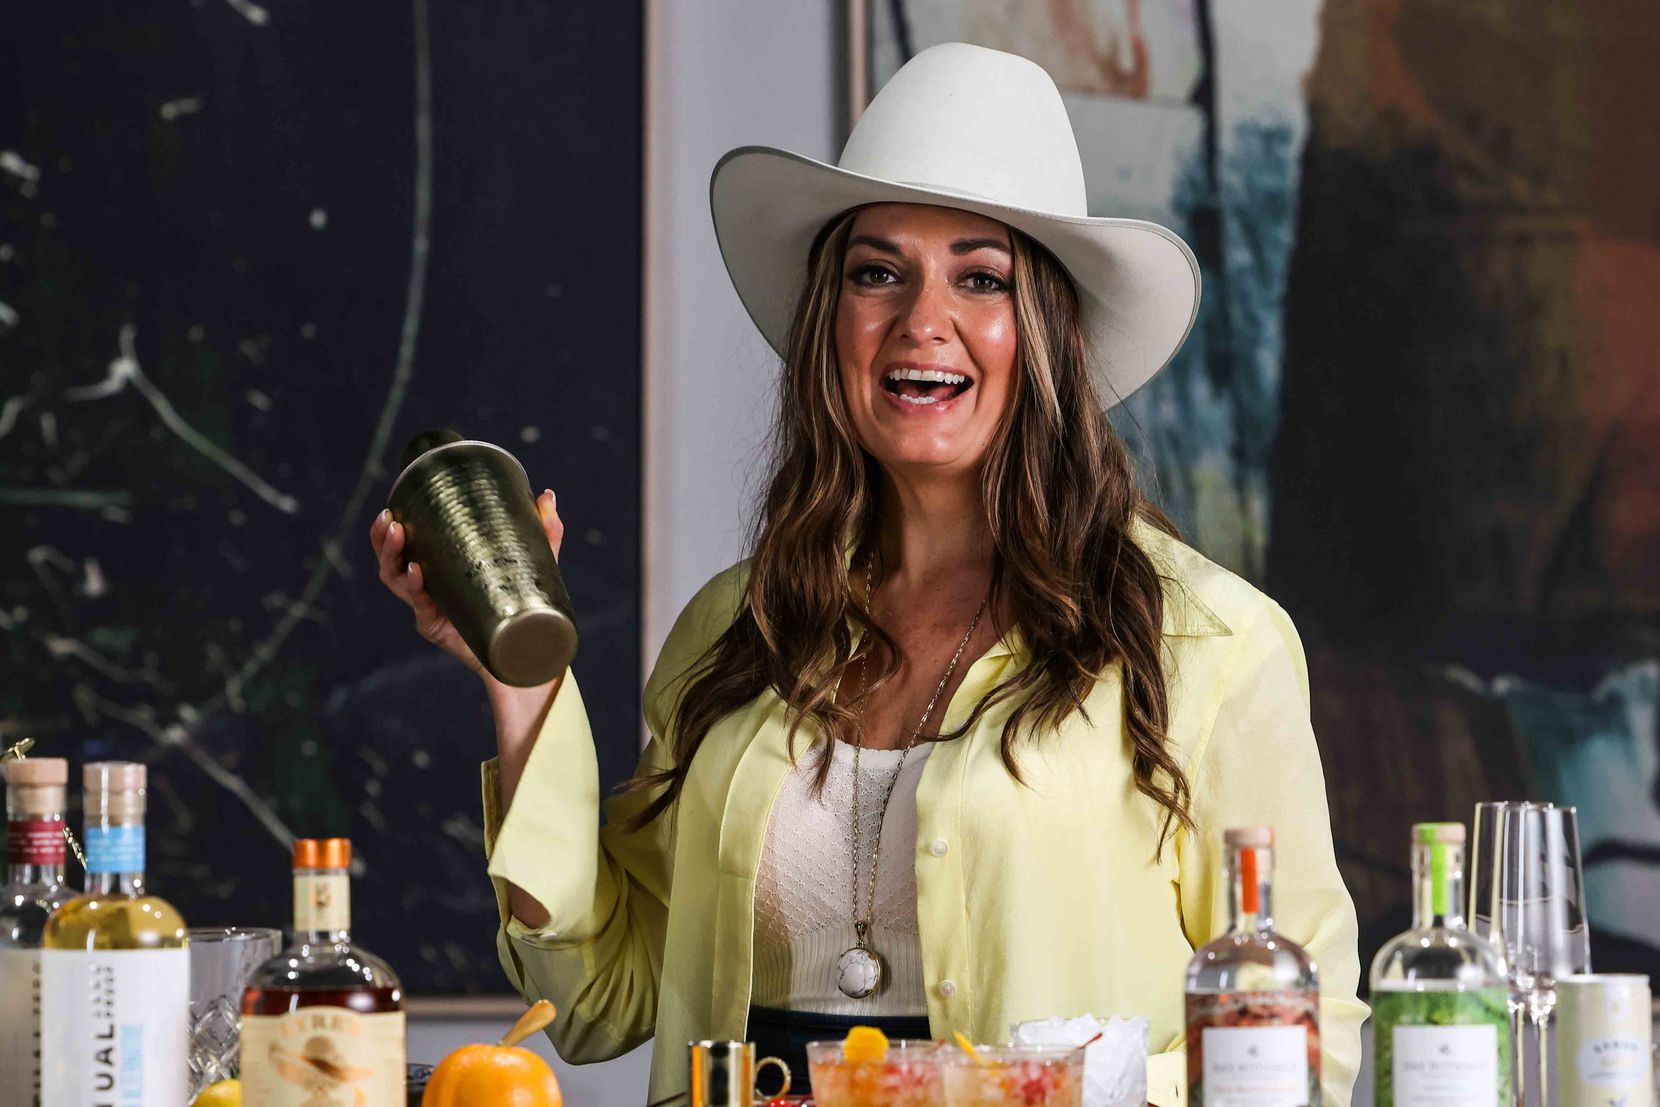 Beth Hutson, a beverage professional and creator of The Elevated Elixir, mixes up a drink at Lowtown Studios in Fort Worth.